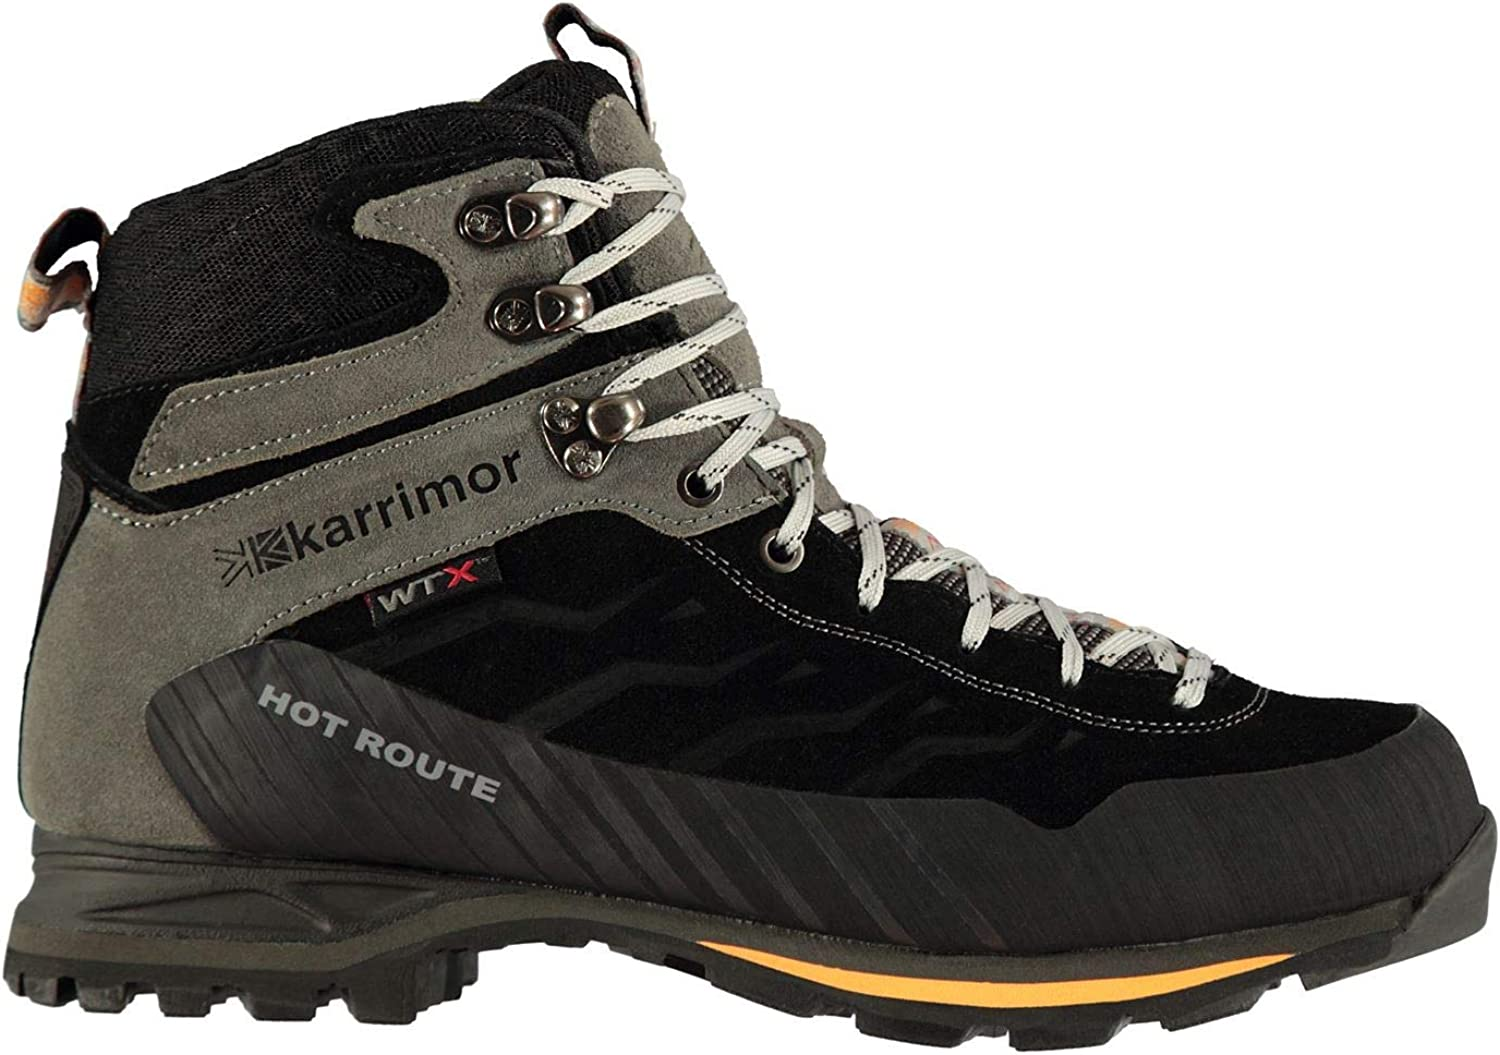 Karrimor Mens Hot Route Mid Walking Boots